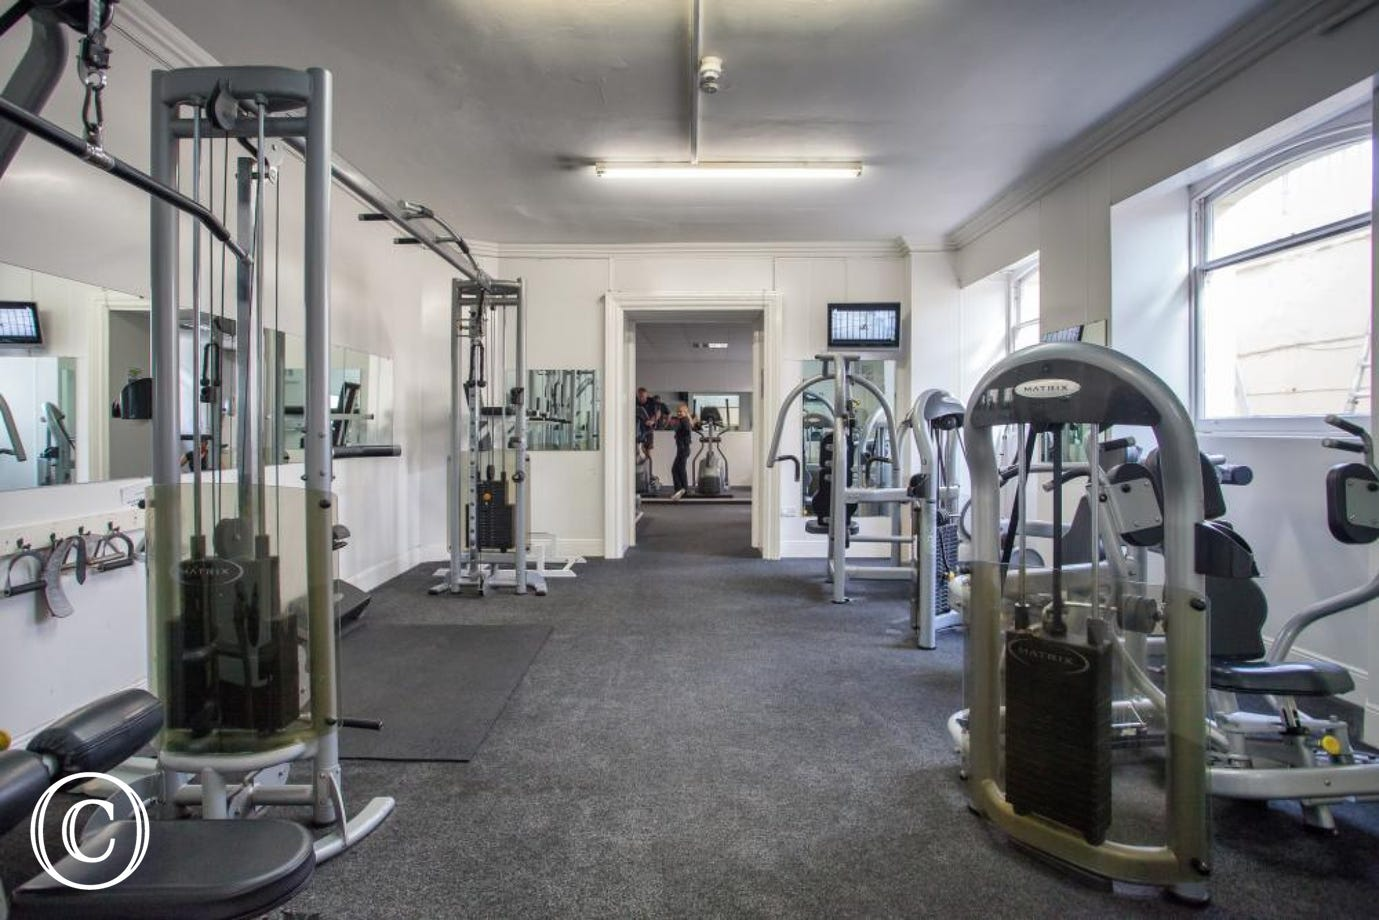 Meadfoot Beach Apartment, Torquay - Gym 1